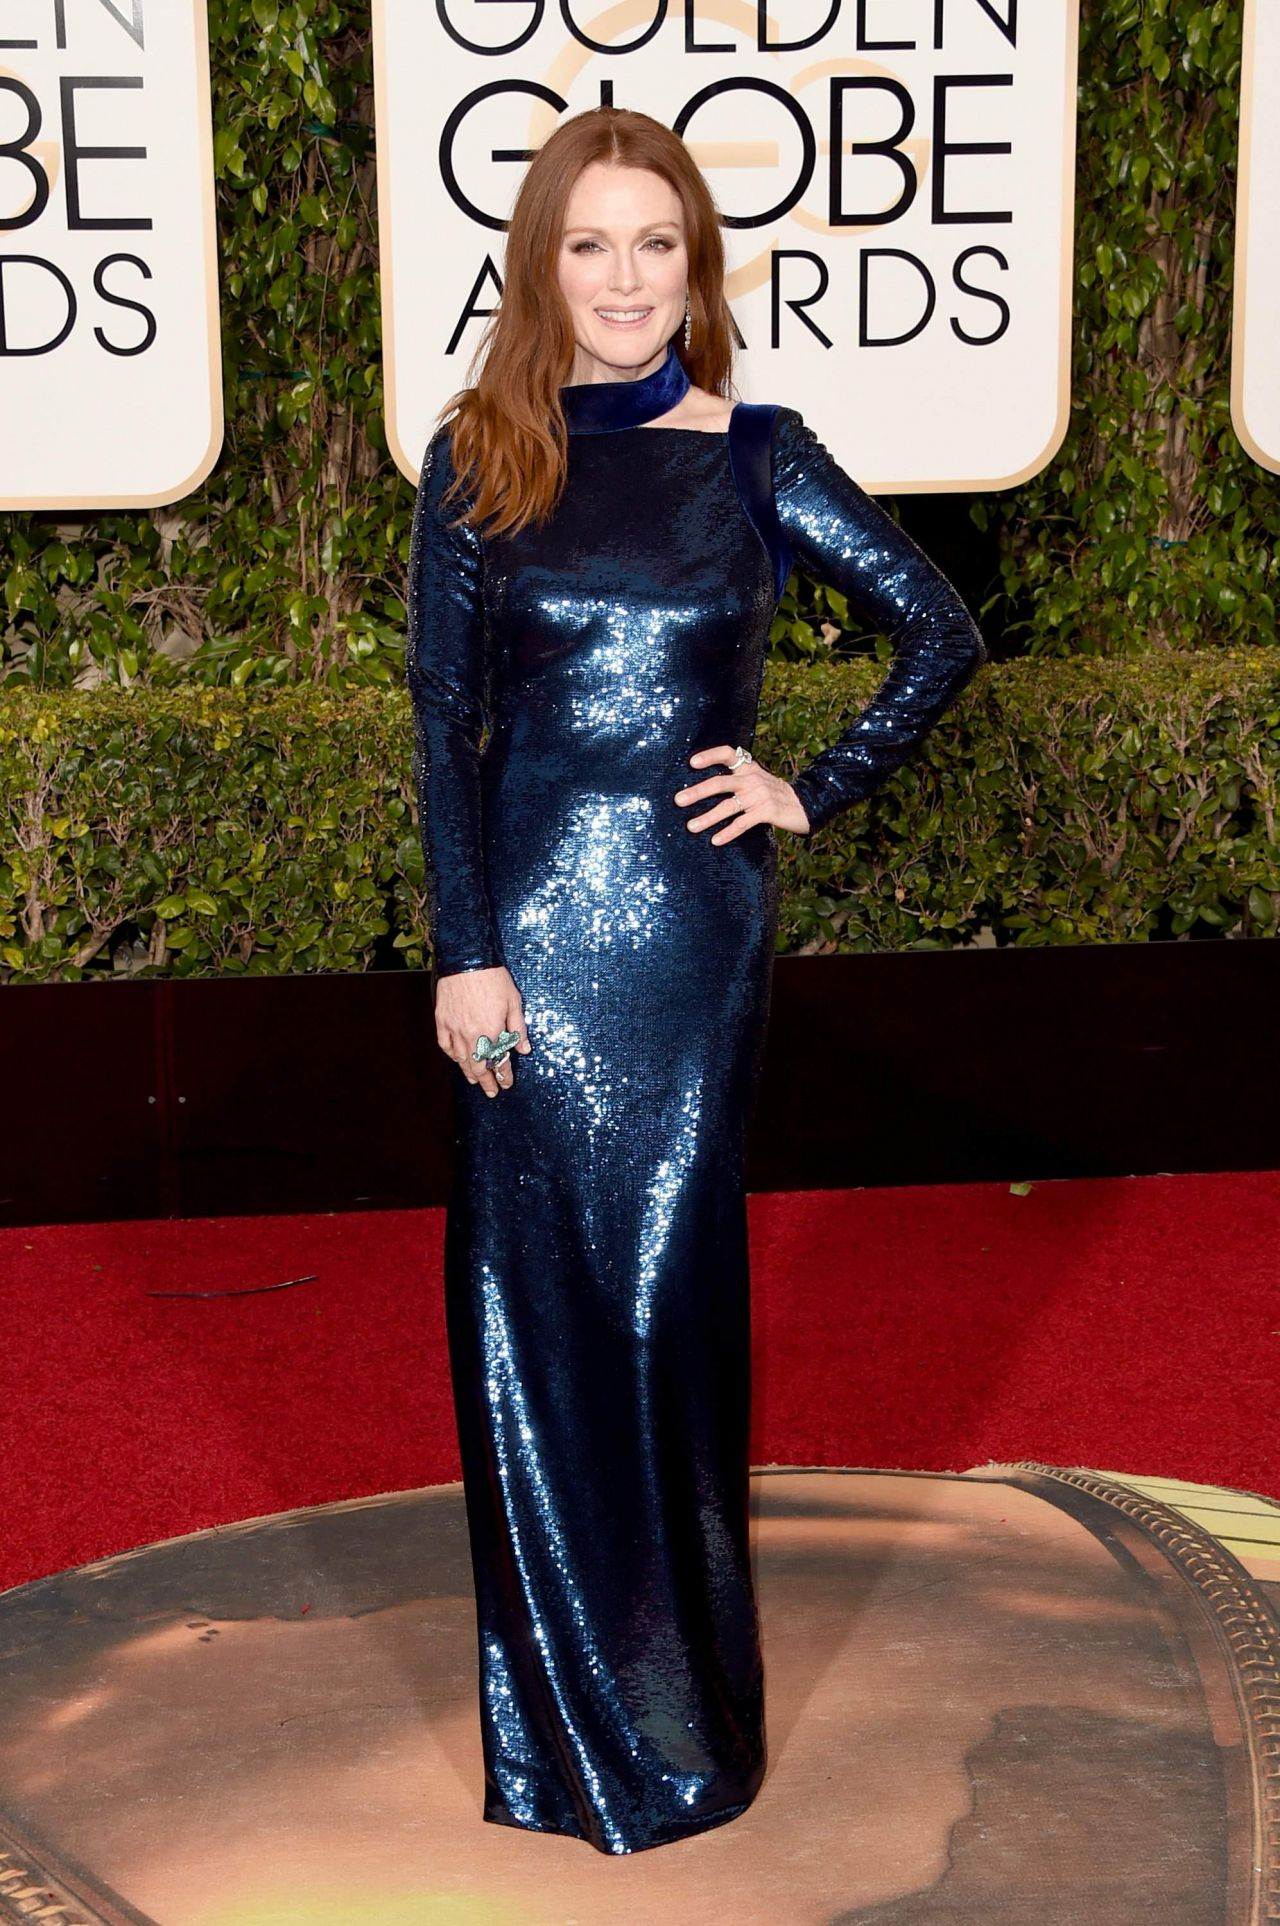 julianne-moore-2016-golden-globe-awards-in-beverly-hills-3